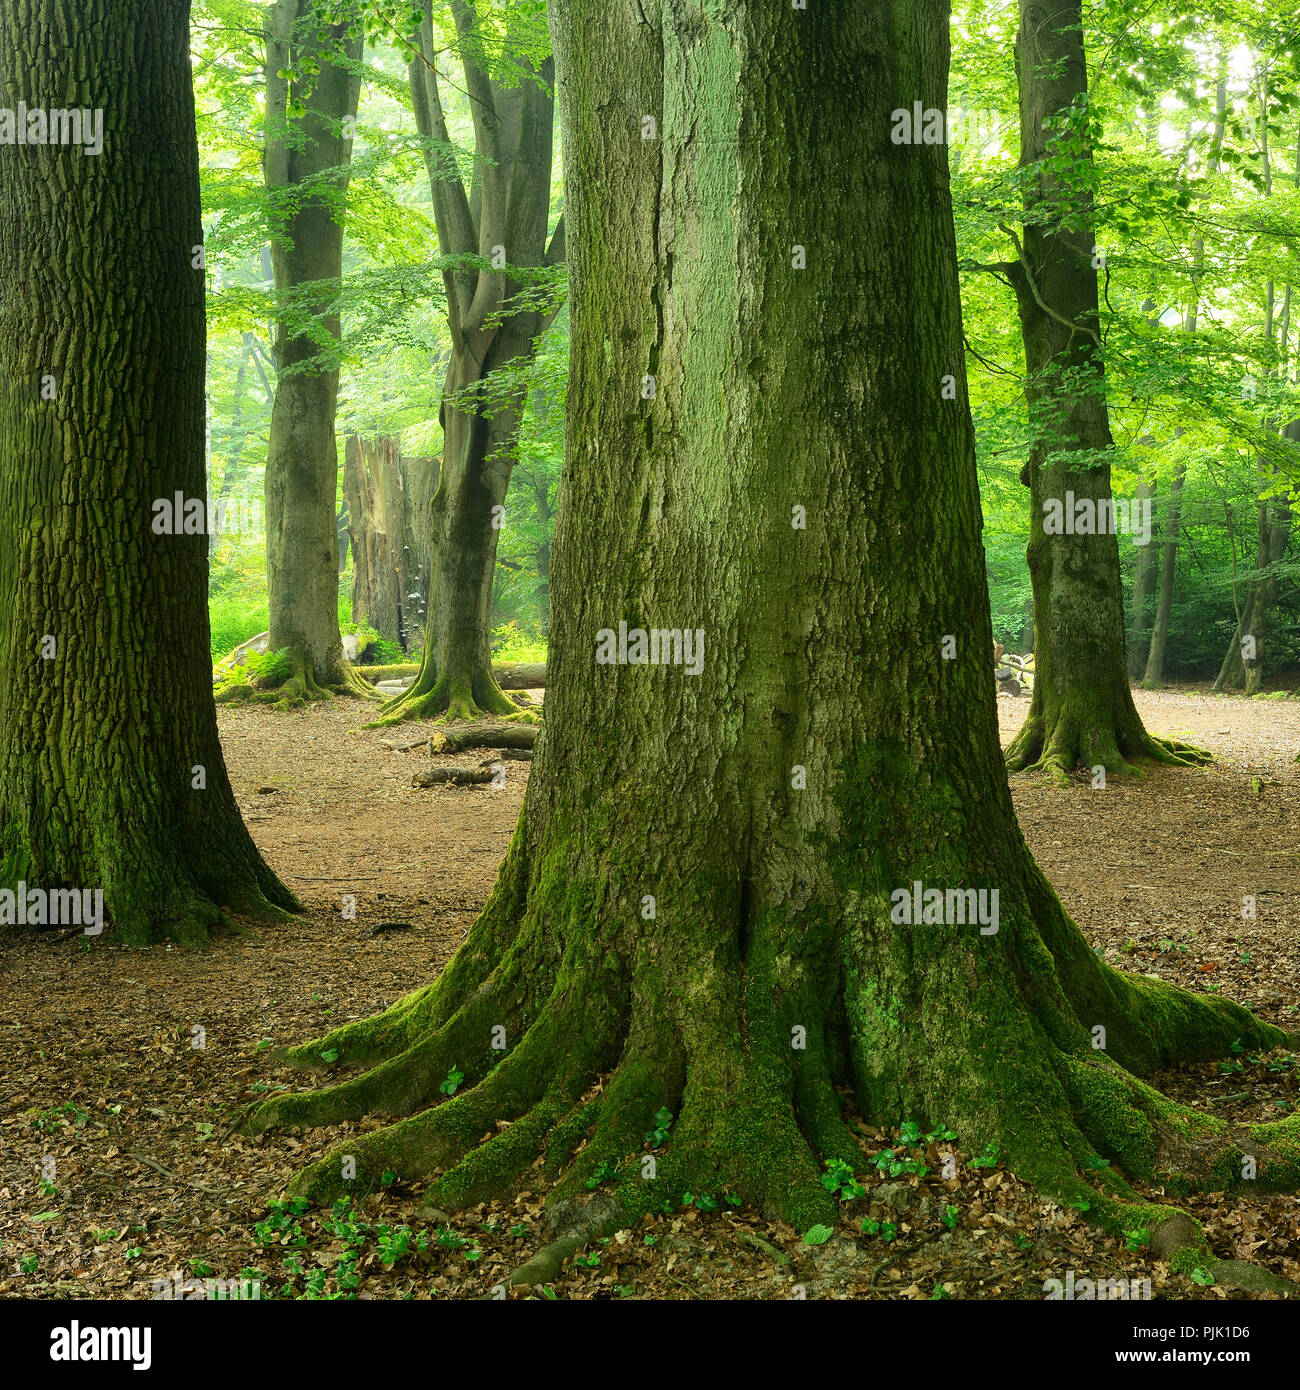 giant trees, mighty old beech trees and oak trees in a former wood pasture, Sababurg, Reinhardswald, North Hesse, Hesse, Germany - Stock Image